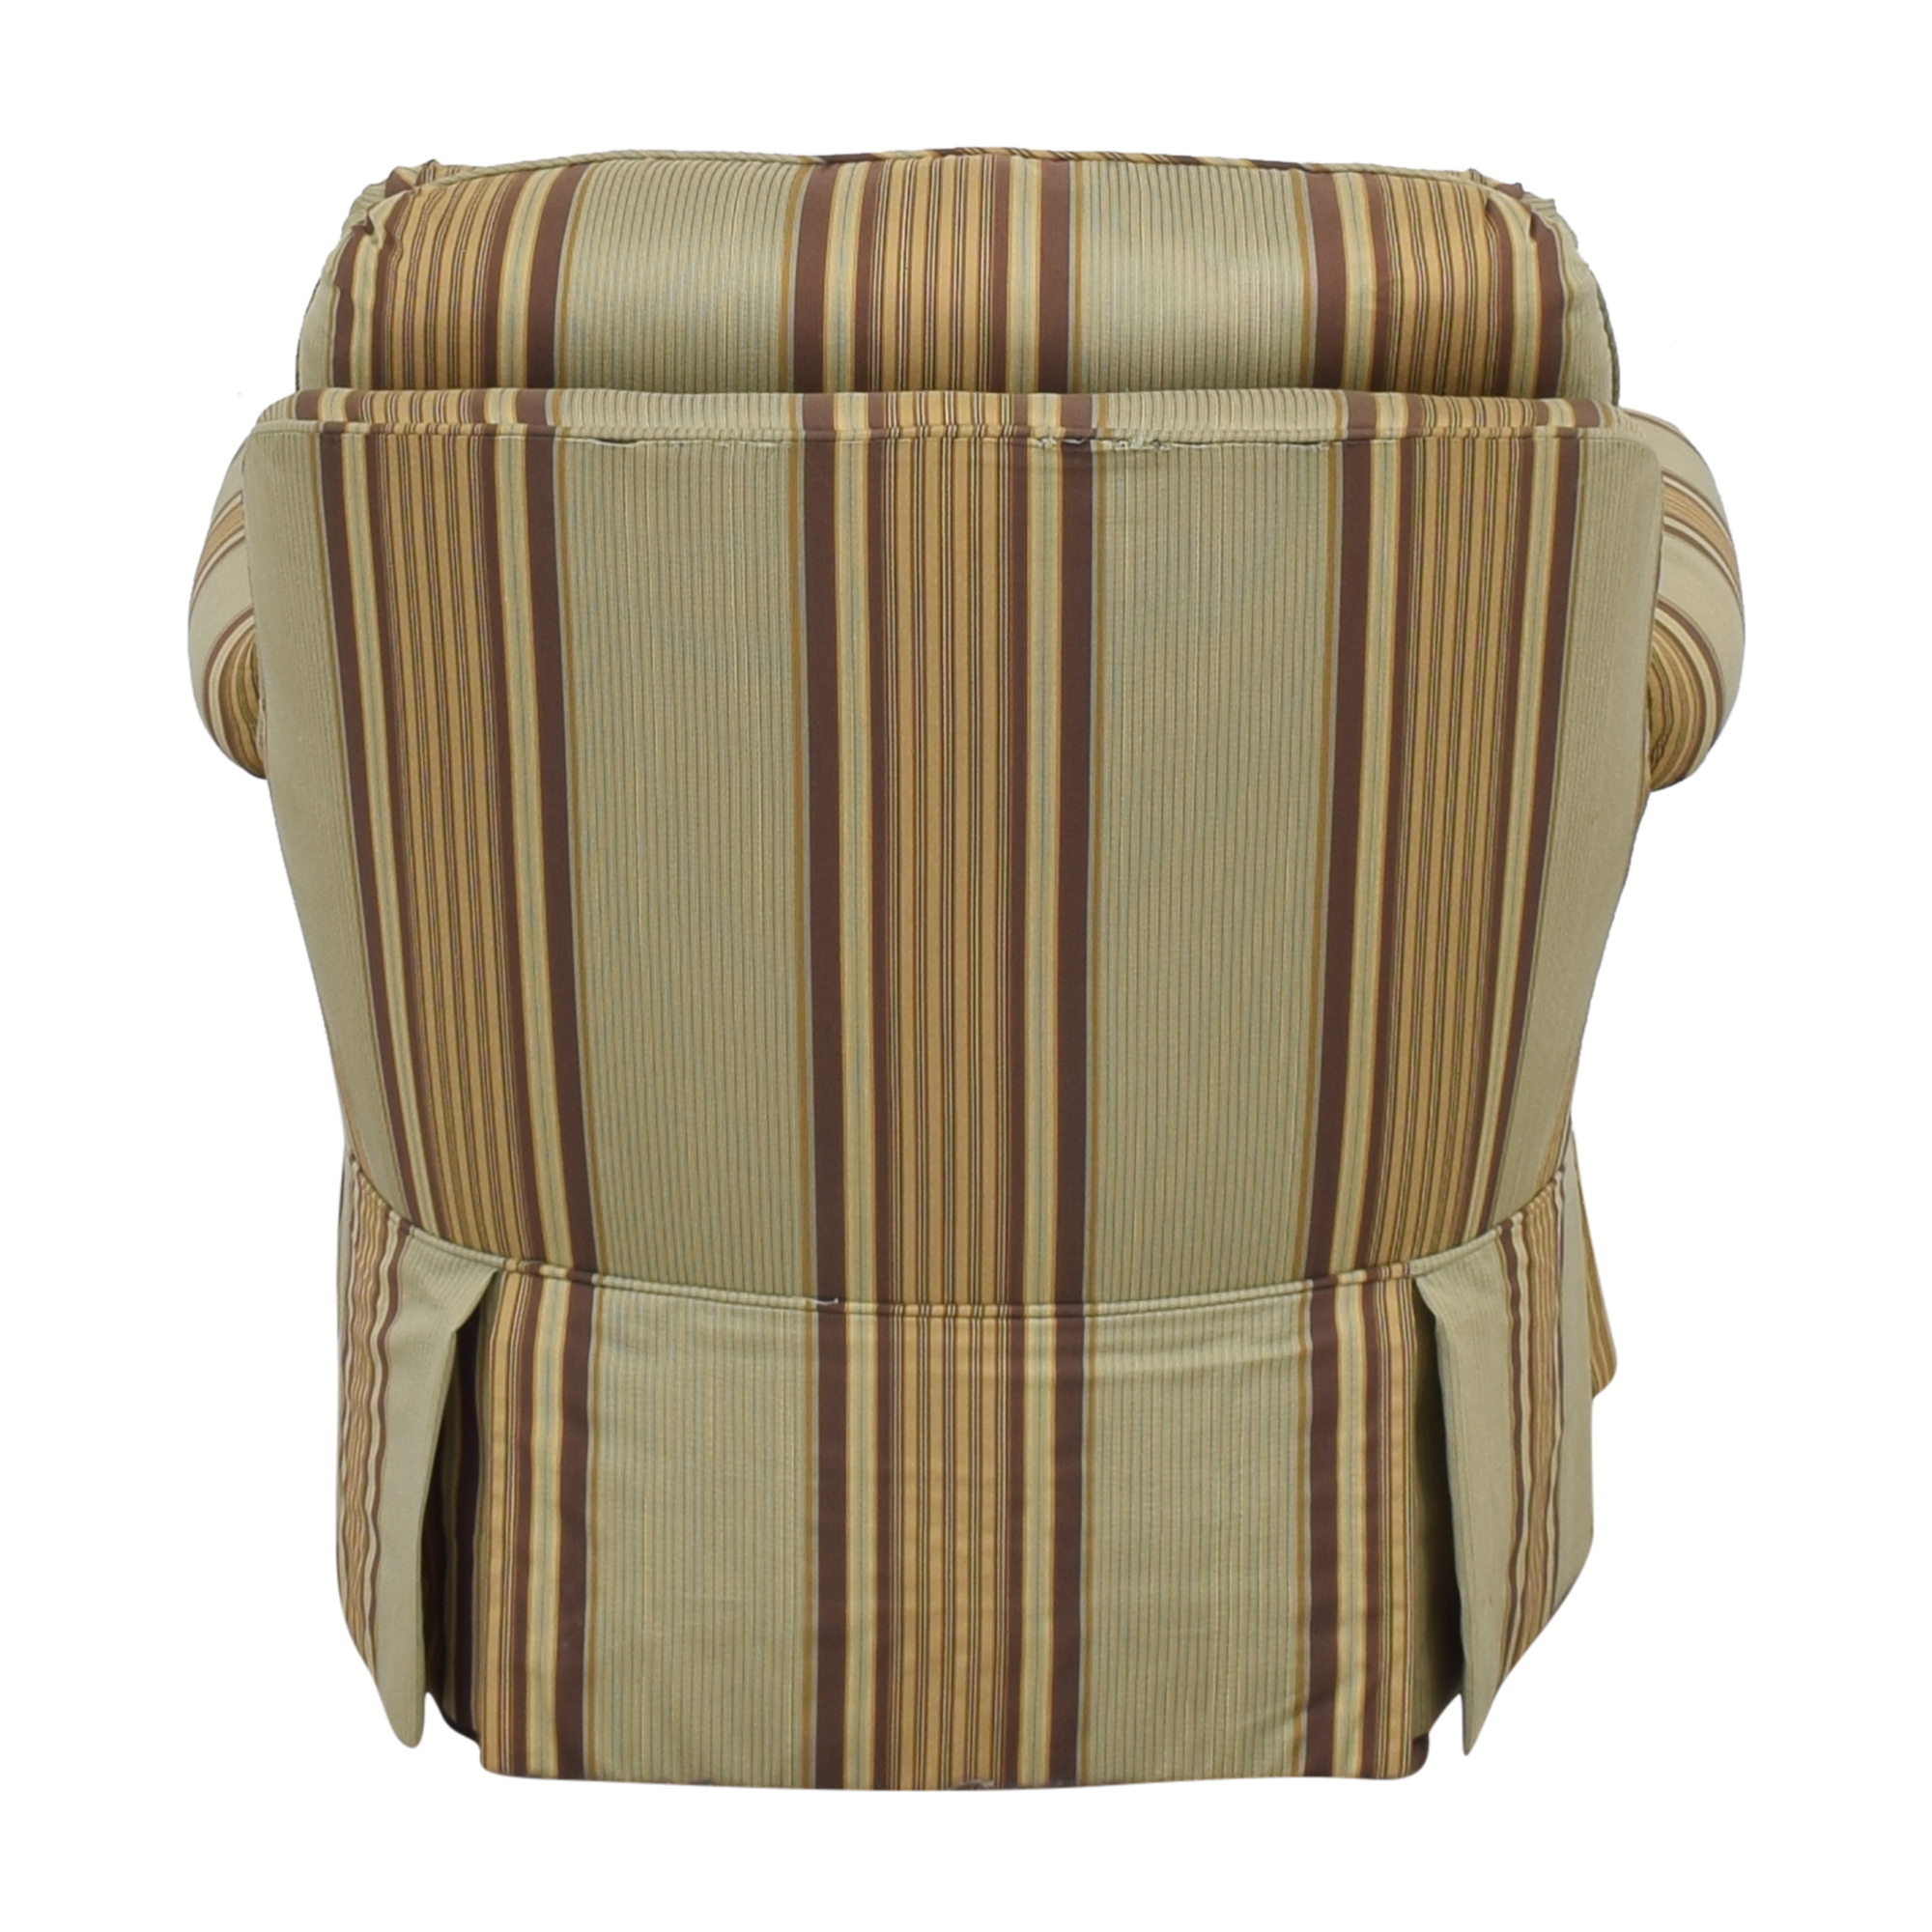 Harden Harden Roll Arm Lounge Chair second hand